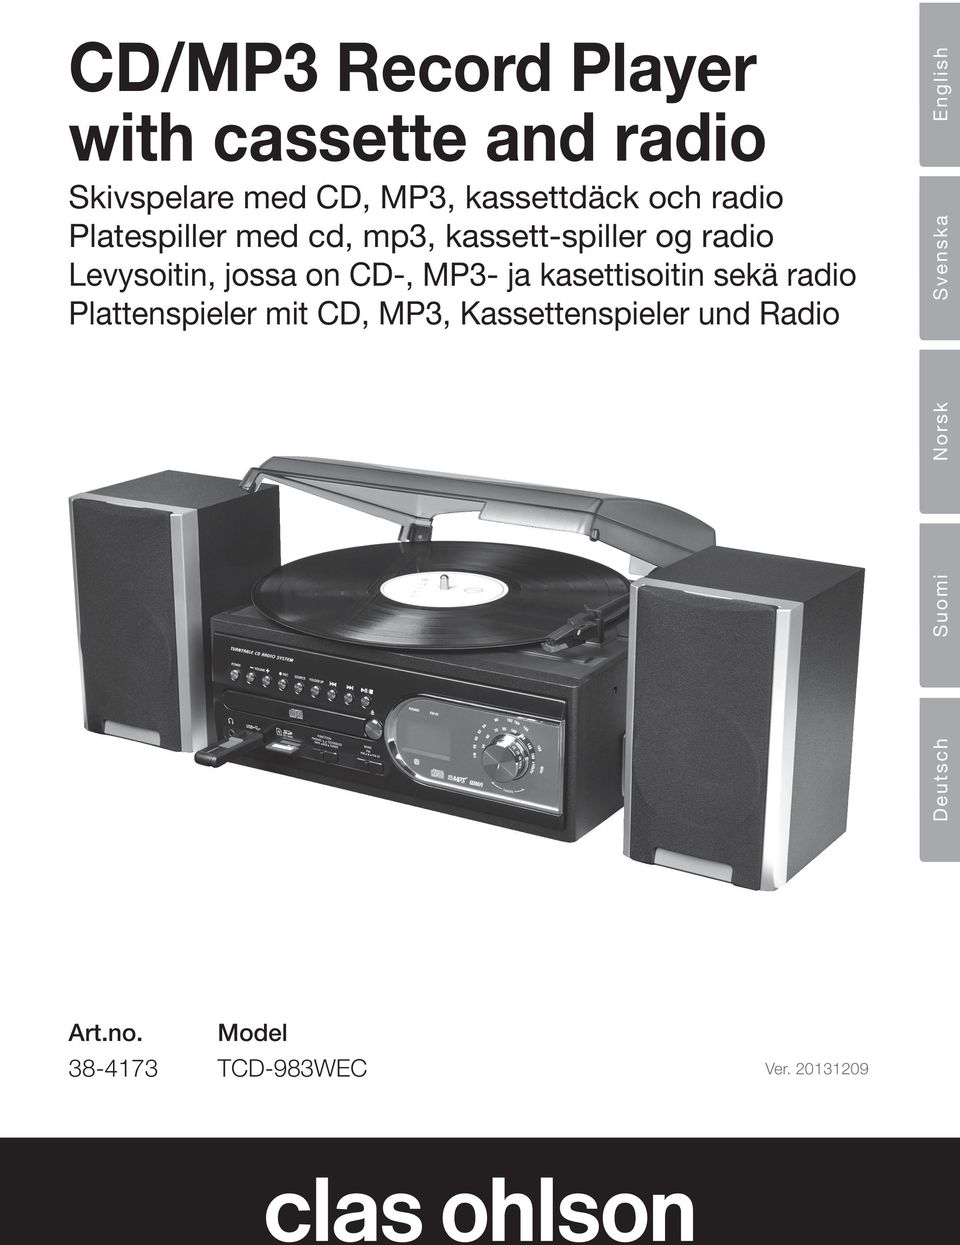 CD-, MP3- ja kasettisoitin sekä radio Plattenspieler mit CD, MP3, Kassettenspieler